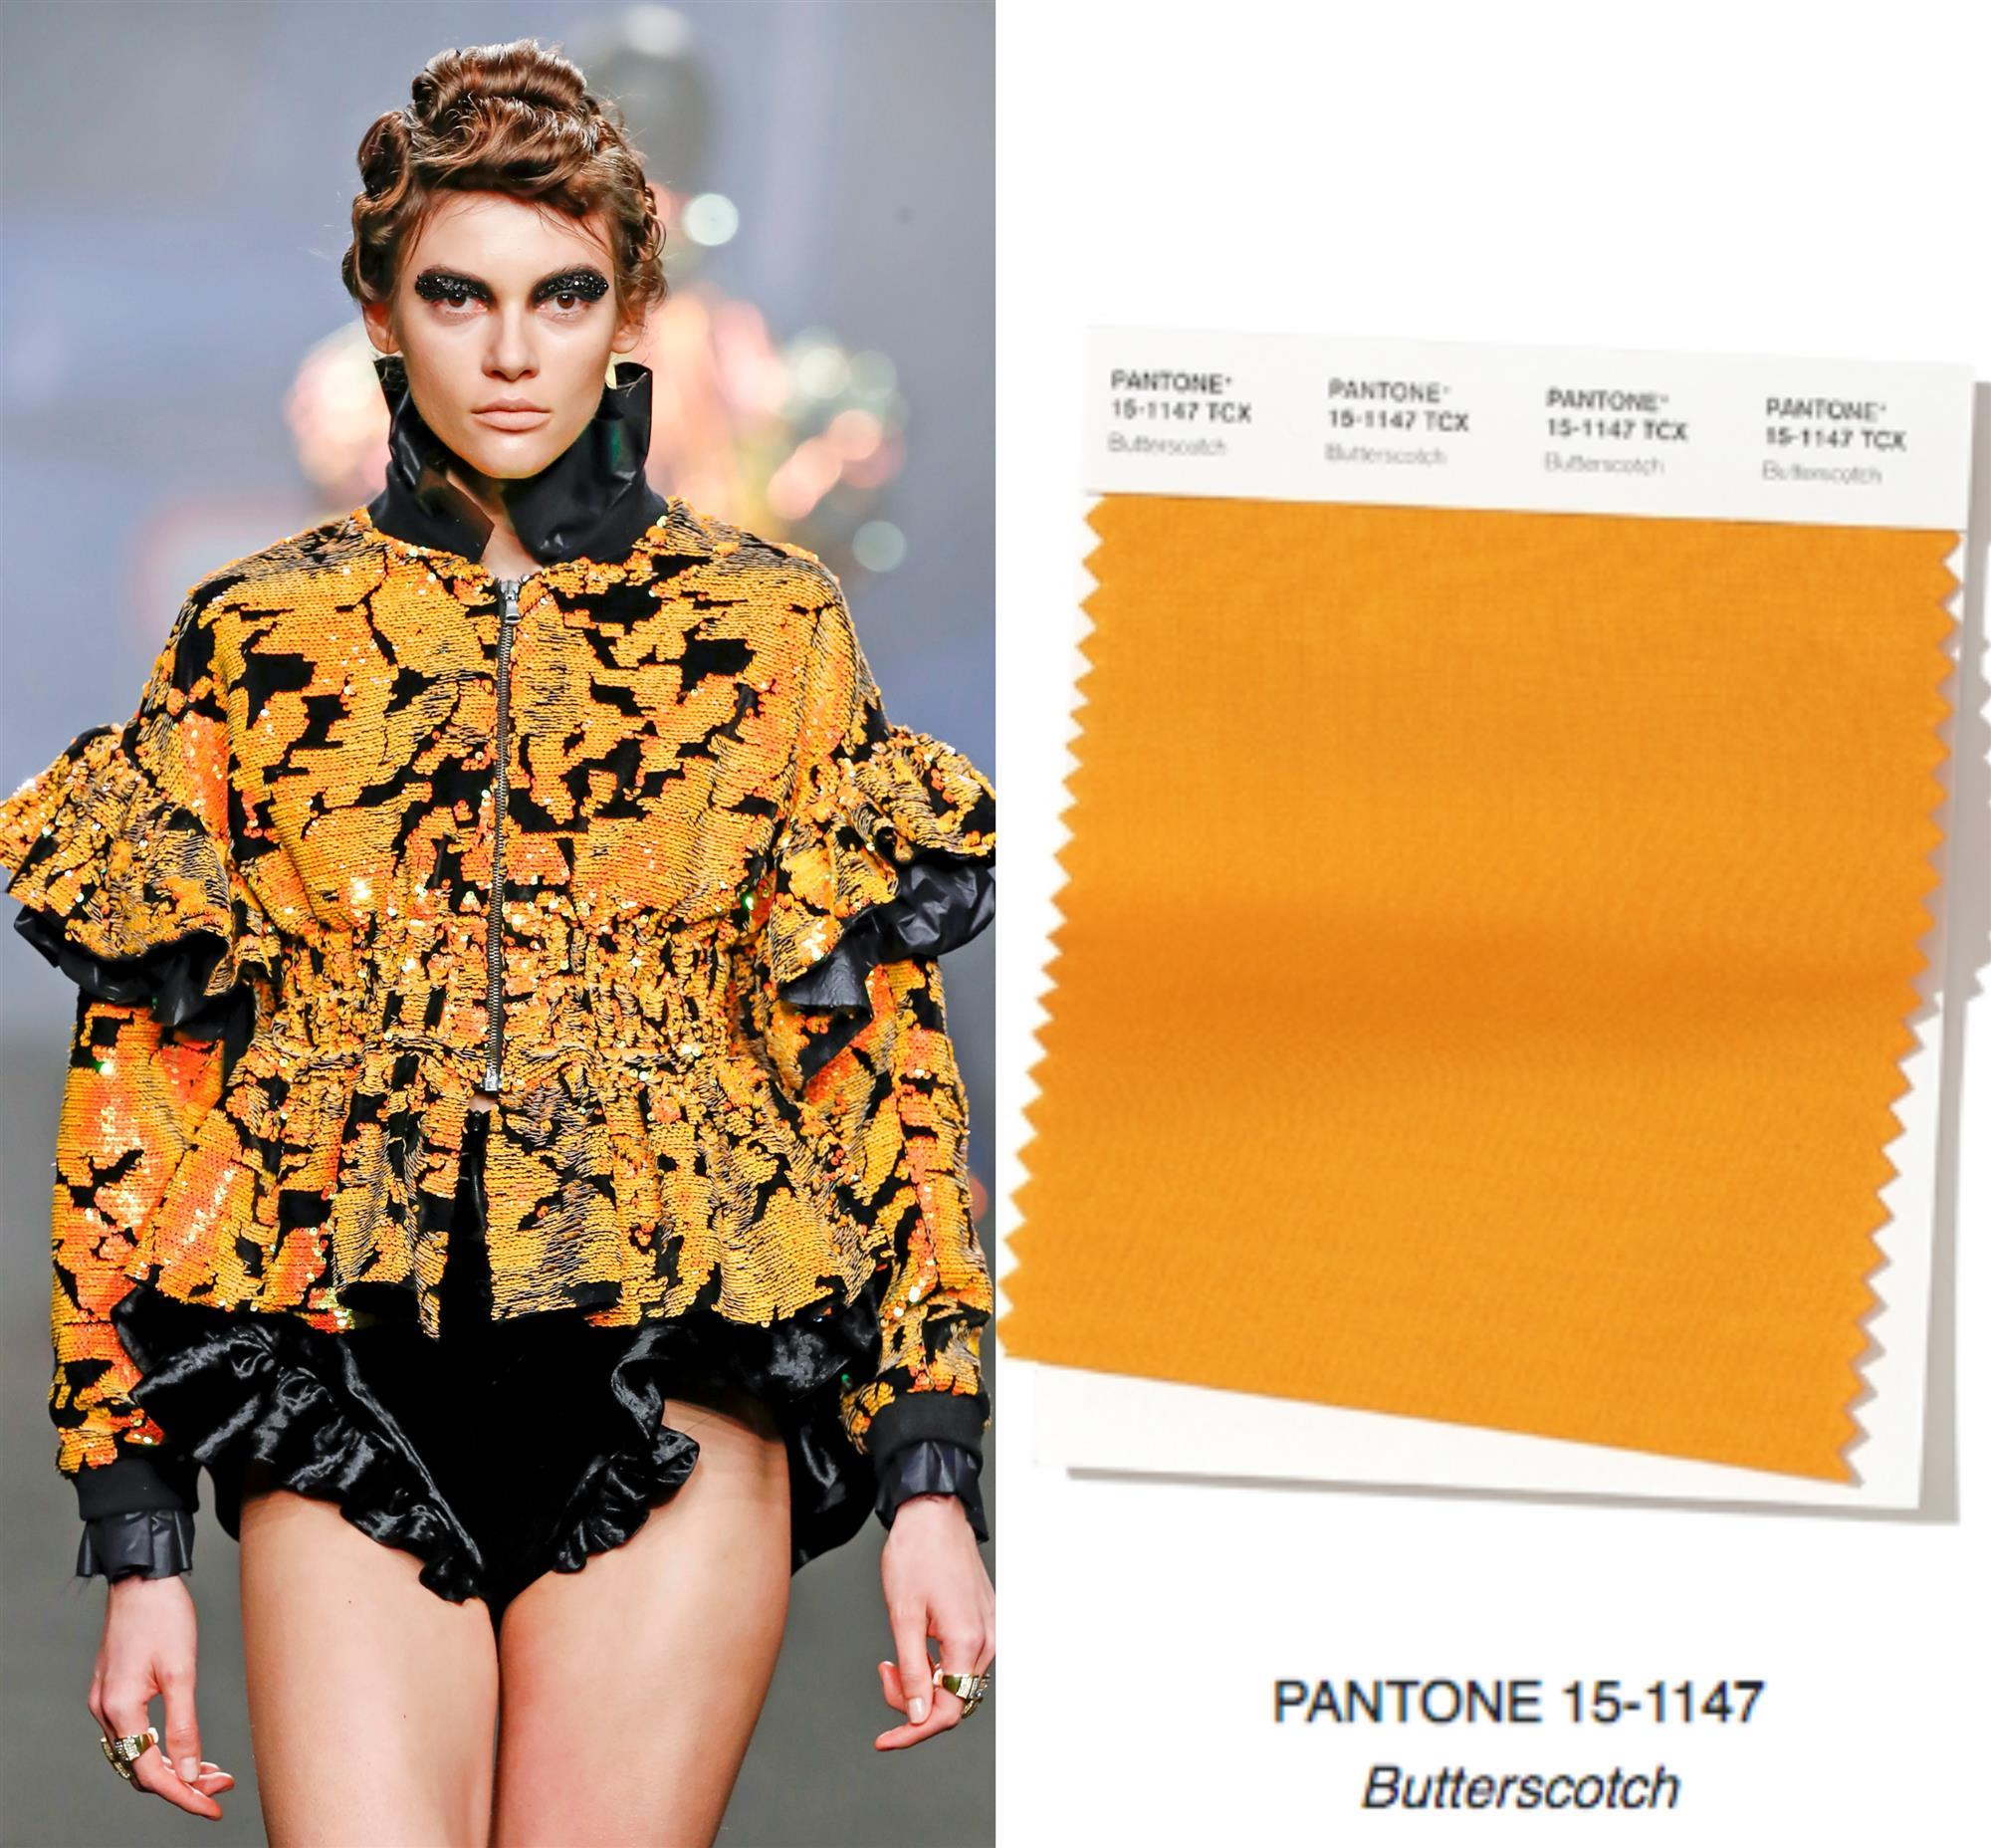 PANTONE 15-1147 - Butterscotch